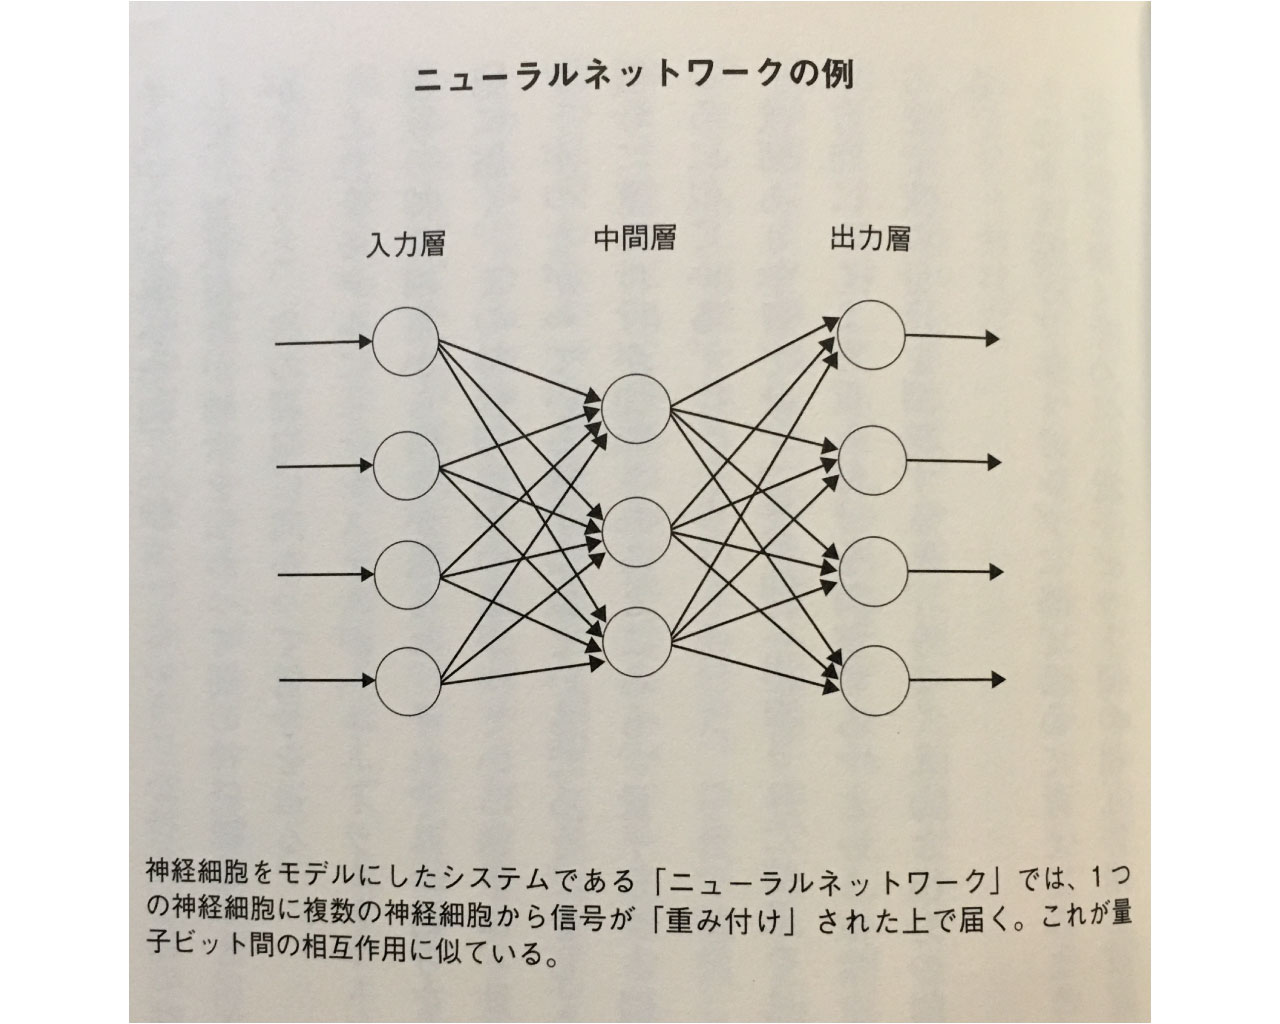 ai-boom-3rd-artifical-intelligence-deep-learning-3